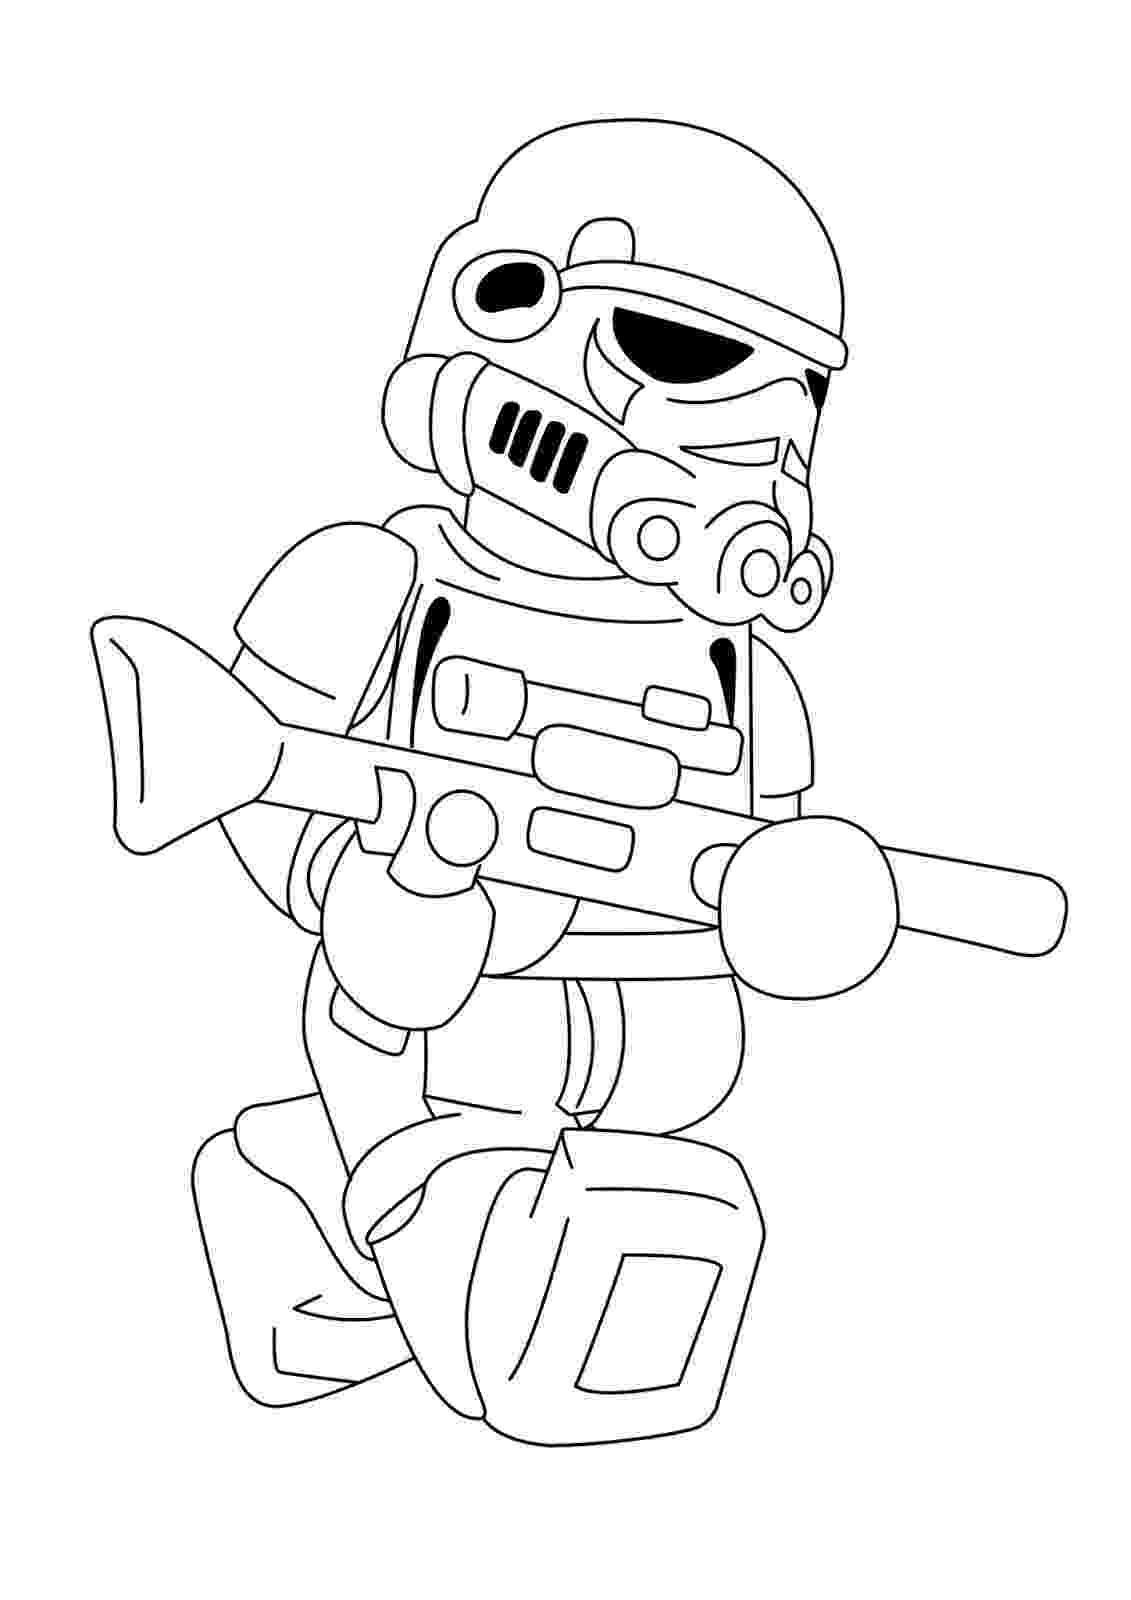 lego coloring lego star wars coloring pages best coloring pages for kids coloring lego 1 1